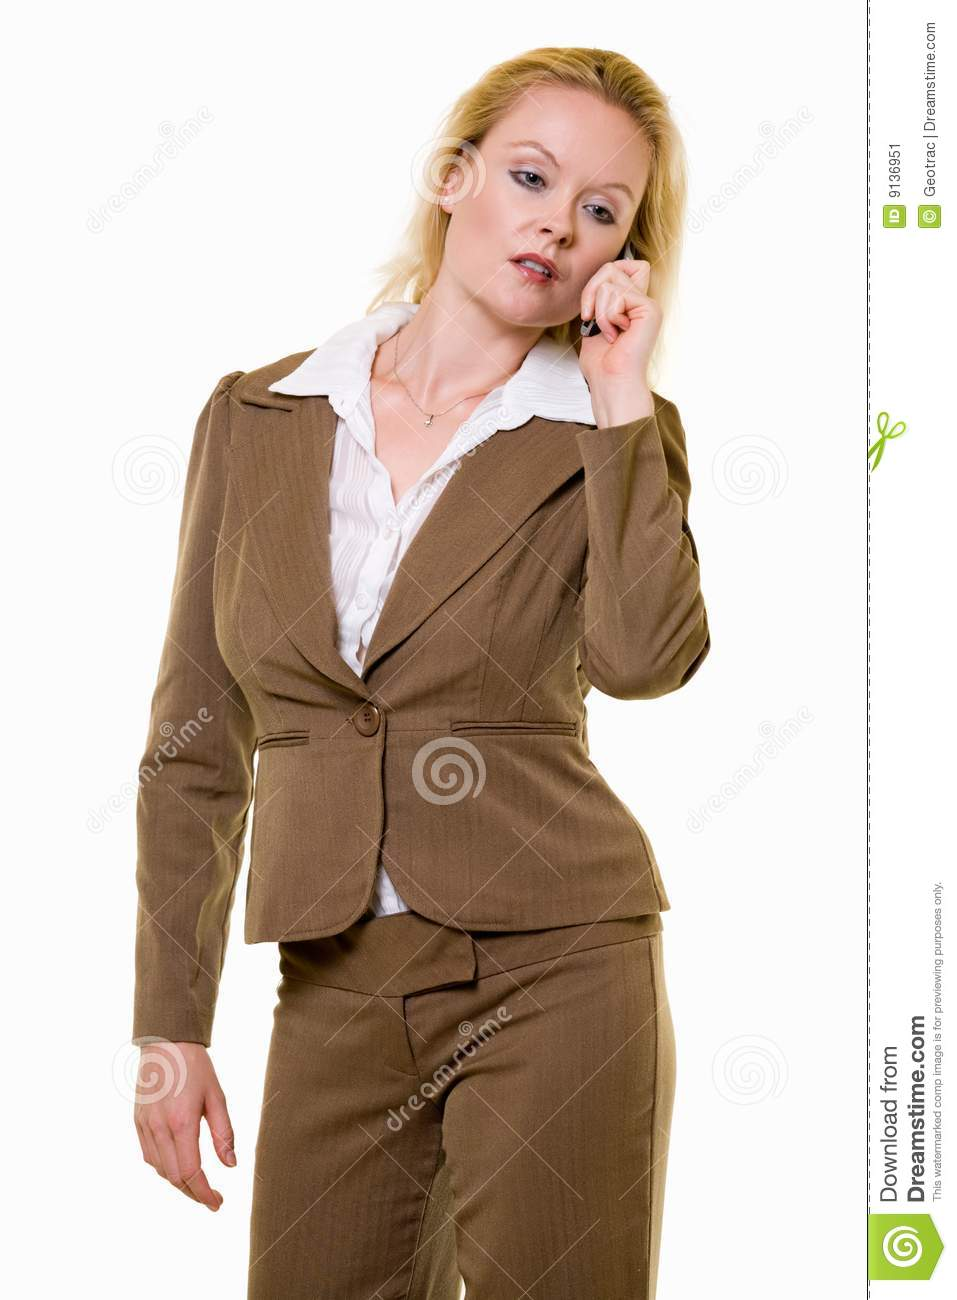 Woman In Brown Business Suit Stock Image - Image: 9136951